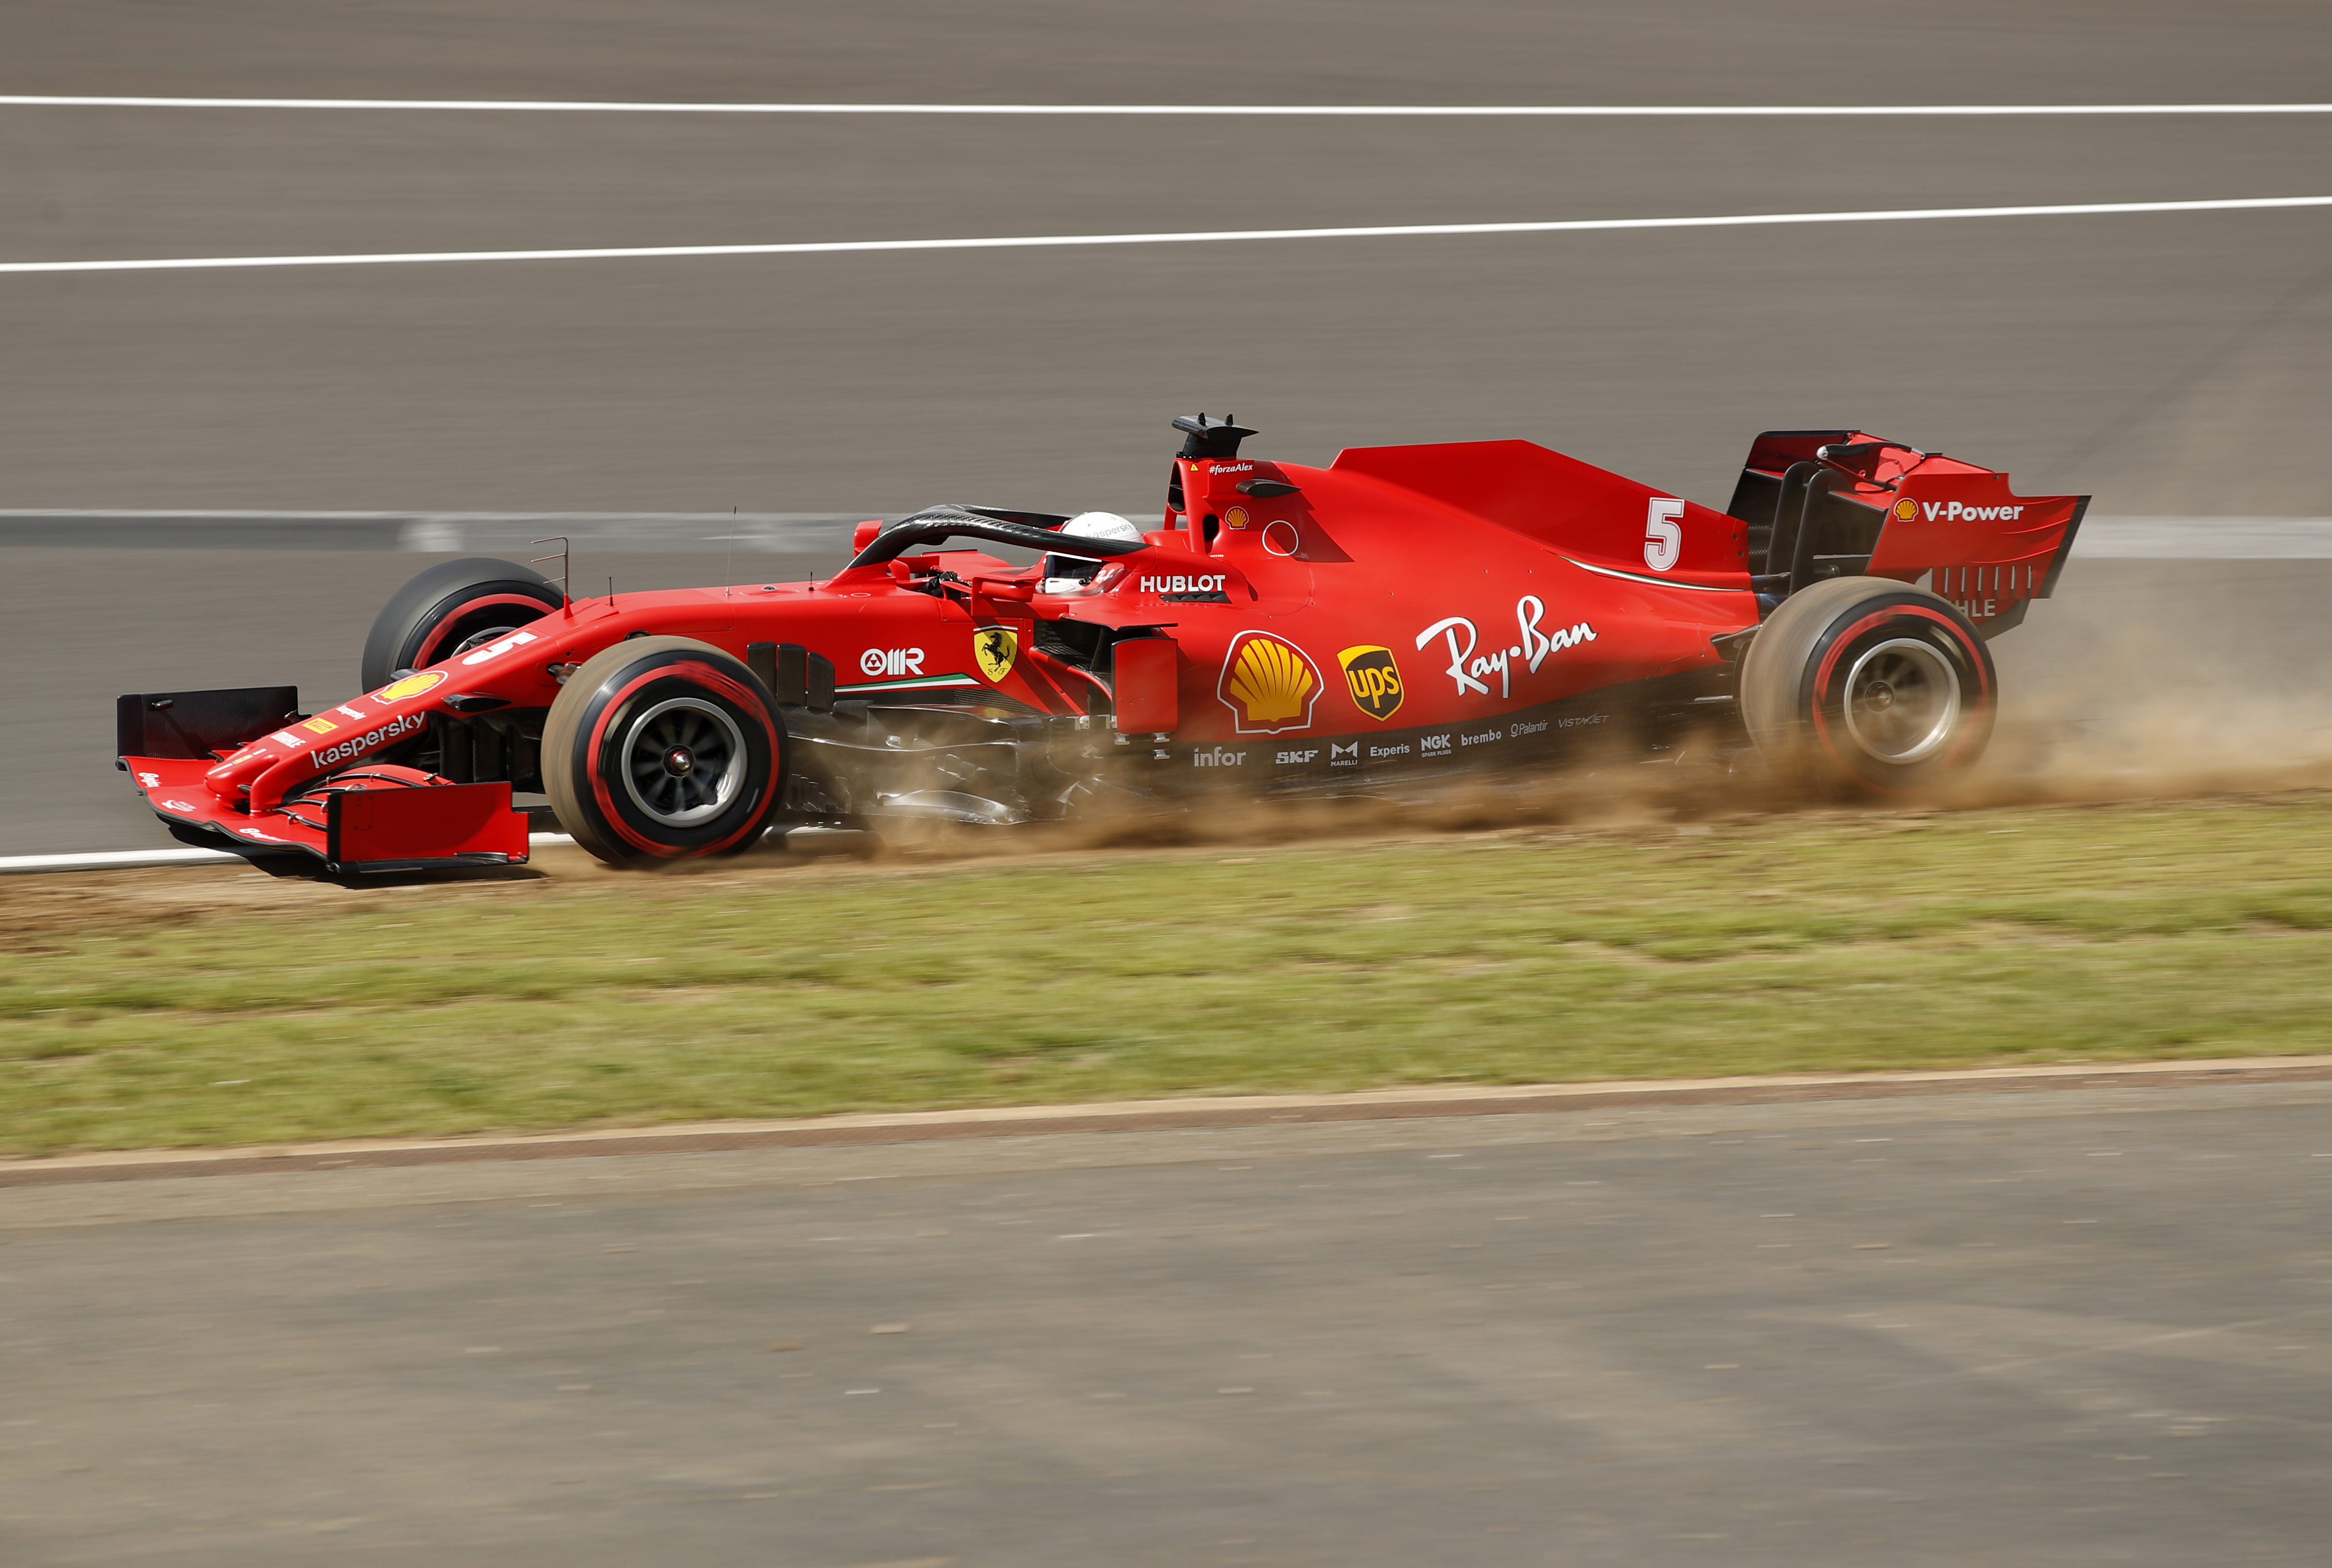 Ferrari driver Sebastian Vettel of Germany steers his car during the qualifying session session for the British Formula One Grand Prix at the Silverstone racetrack, Silverstone, England, Saturday, Aug. 1, 2020. The British Formula One Grand Prix will be held on Sunday. (Andrew Boyers/Poolvia AP)